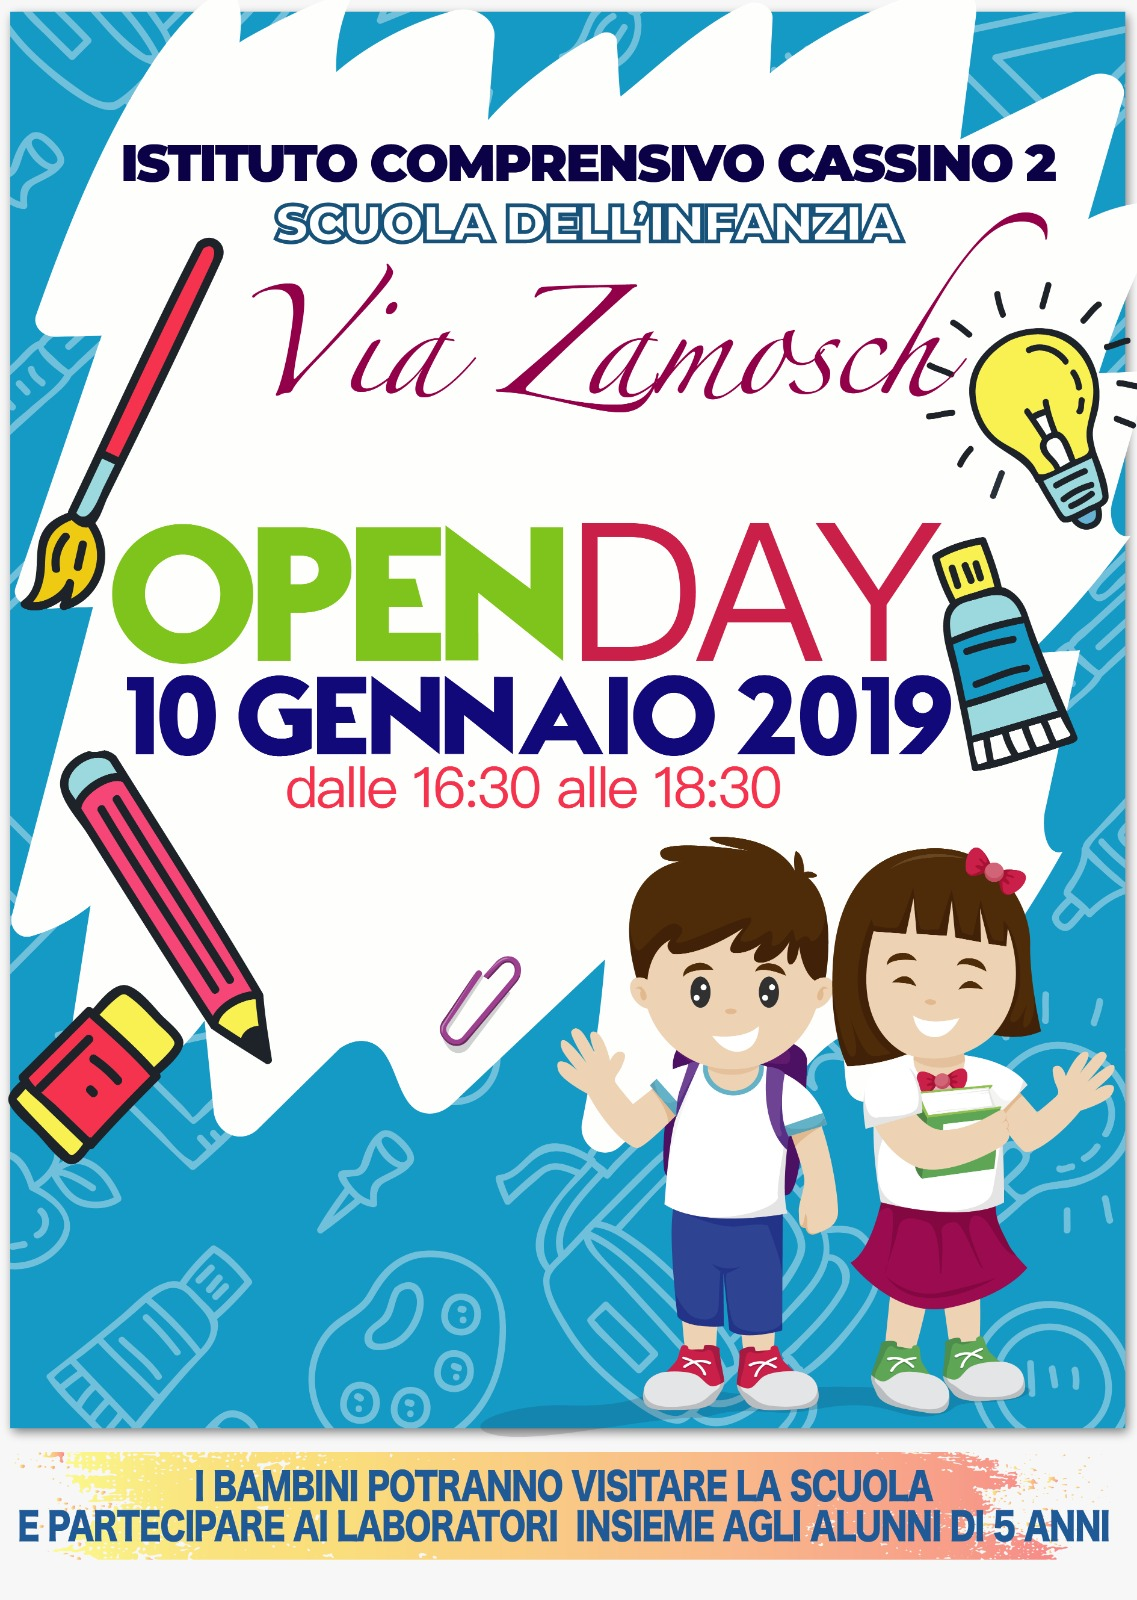 Open_Day_Zamosch_2019.jpg